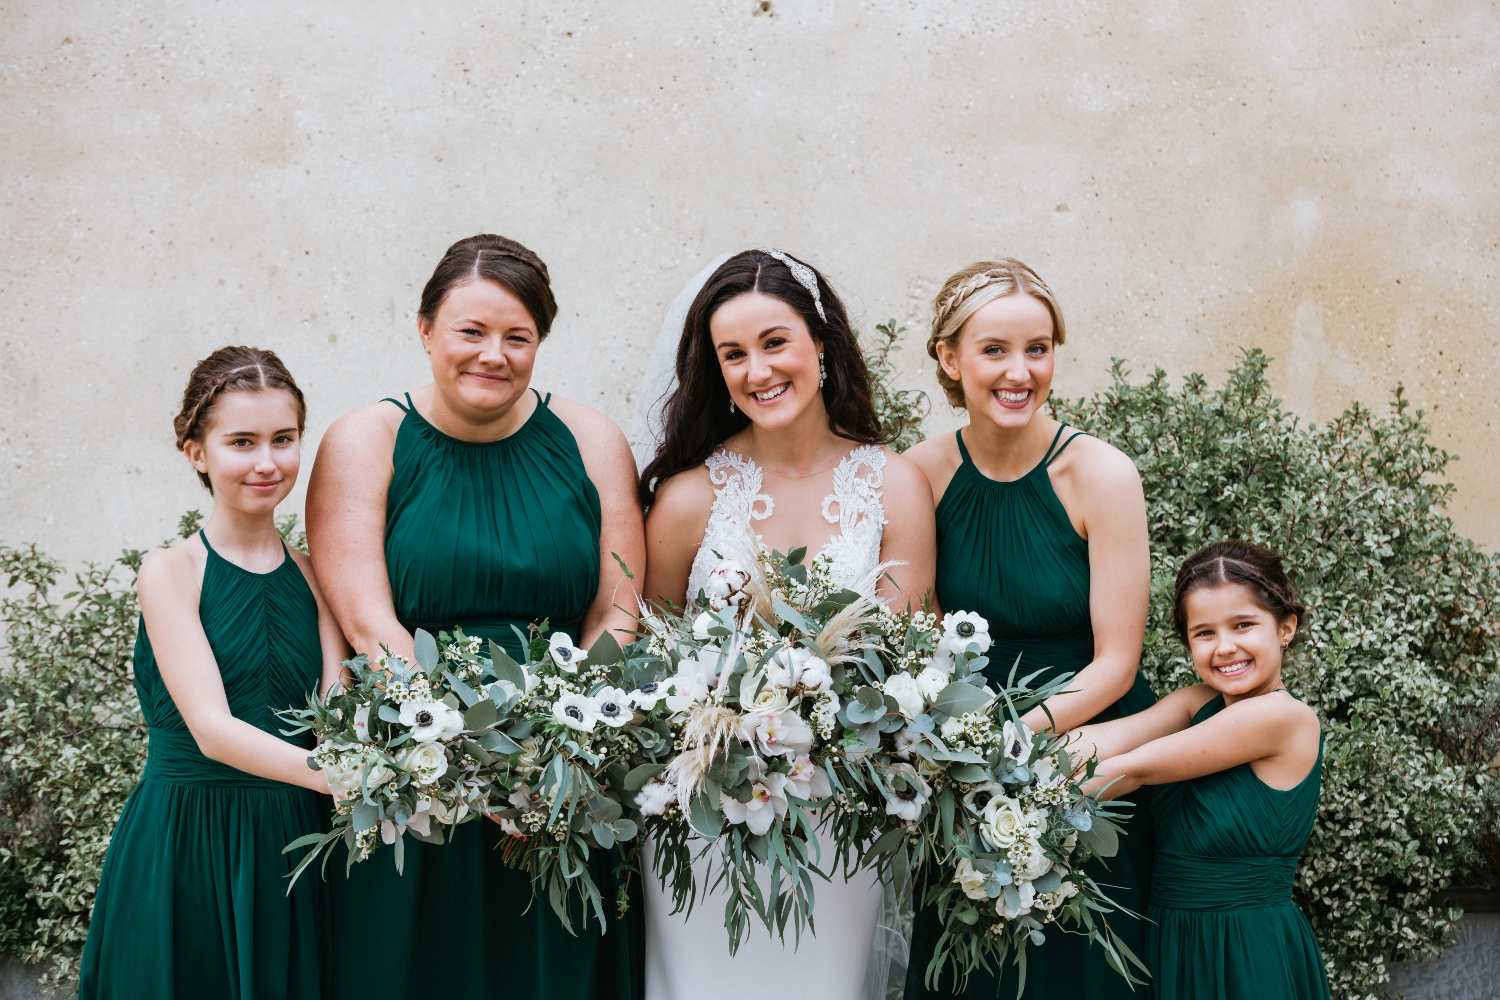 textured foliage emerald green and white bride and bridesmaids bouquets, luxury wedding flowers, florist, Dorset, Hampshire, Wiltshire